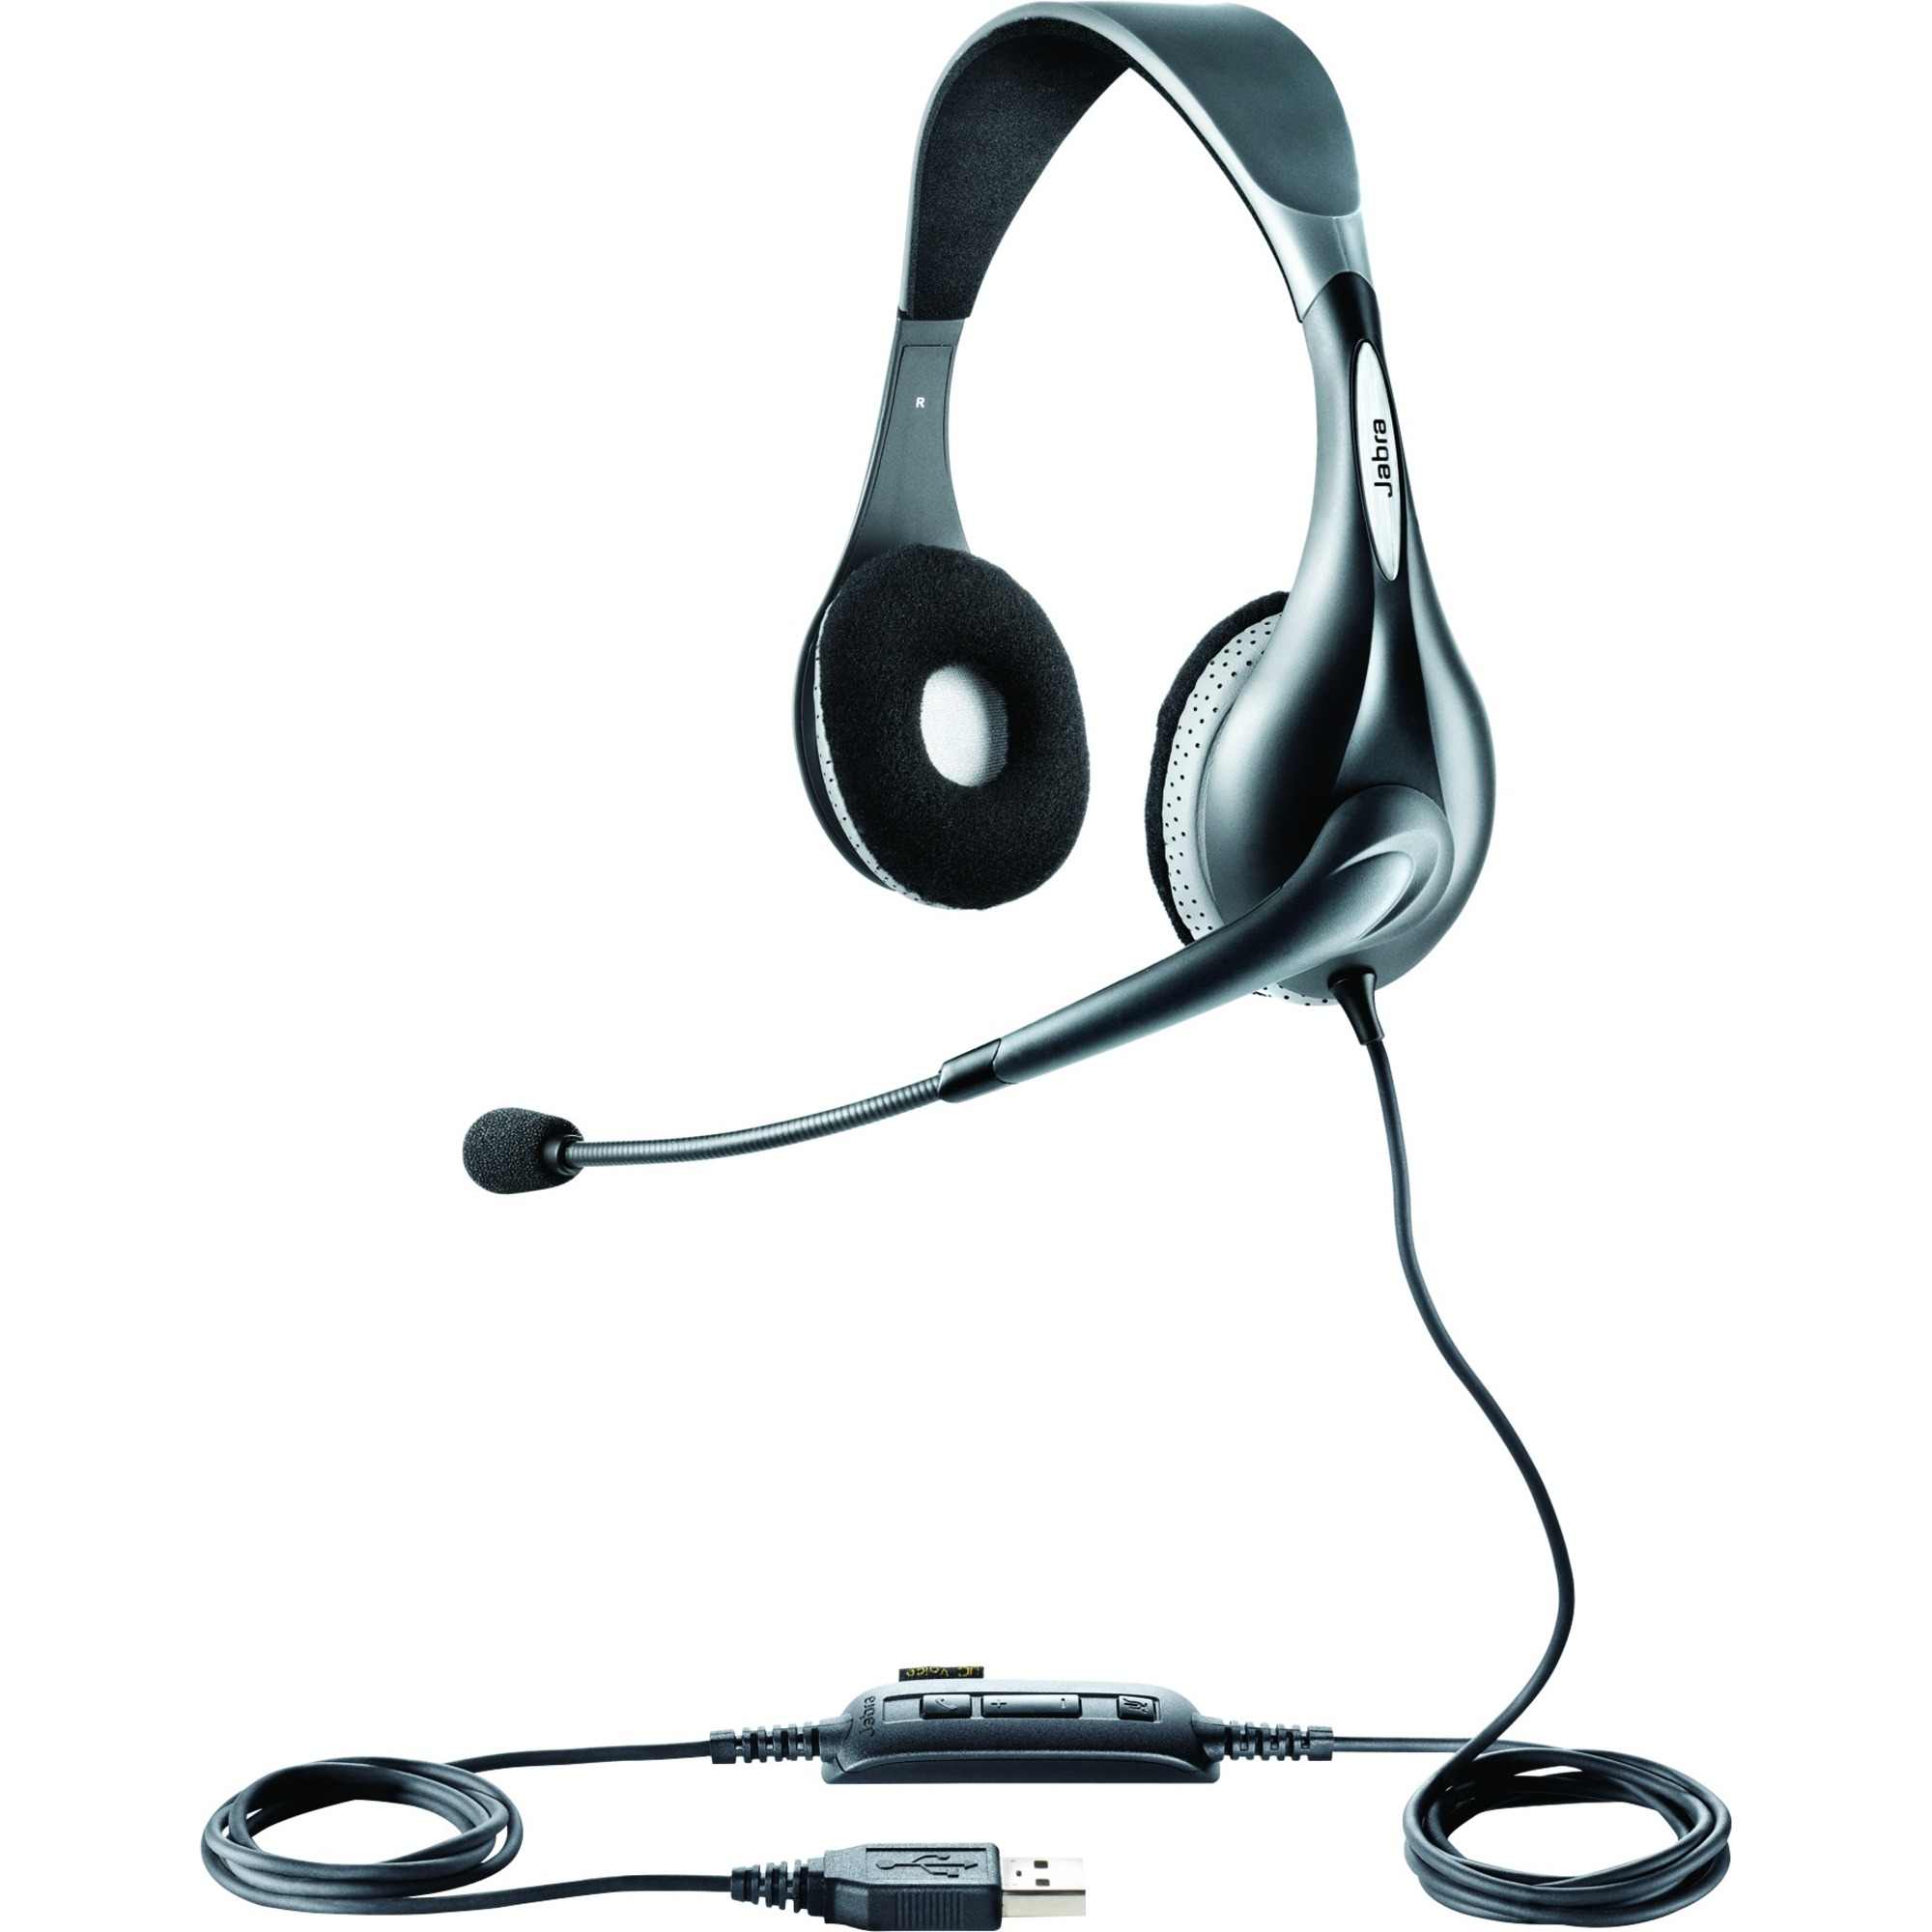 Jabra UC Voice 150 Wired Stereo Headset - Over-the-head - Semi-open - 6 Hz - 6.80 kHz - USB